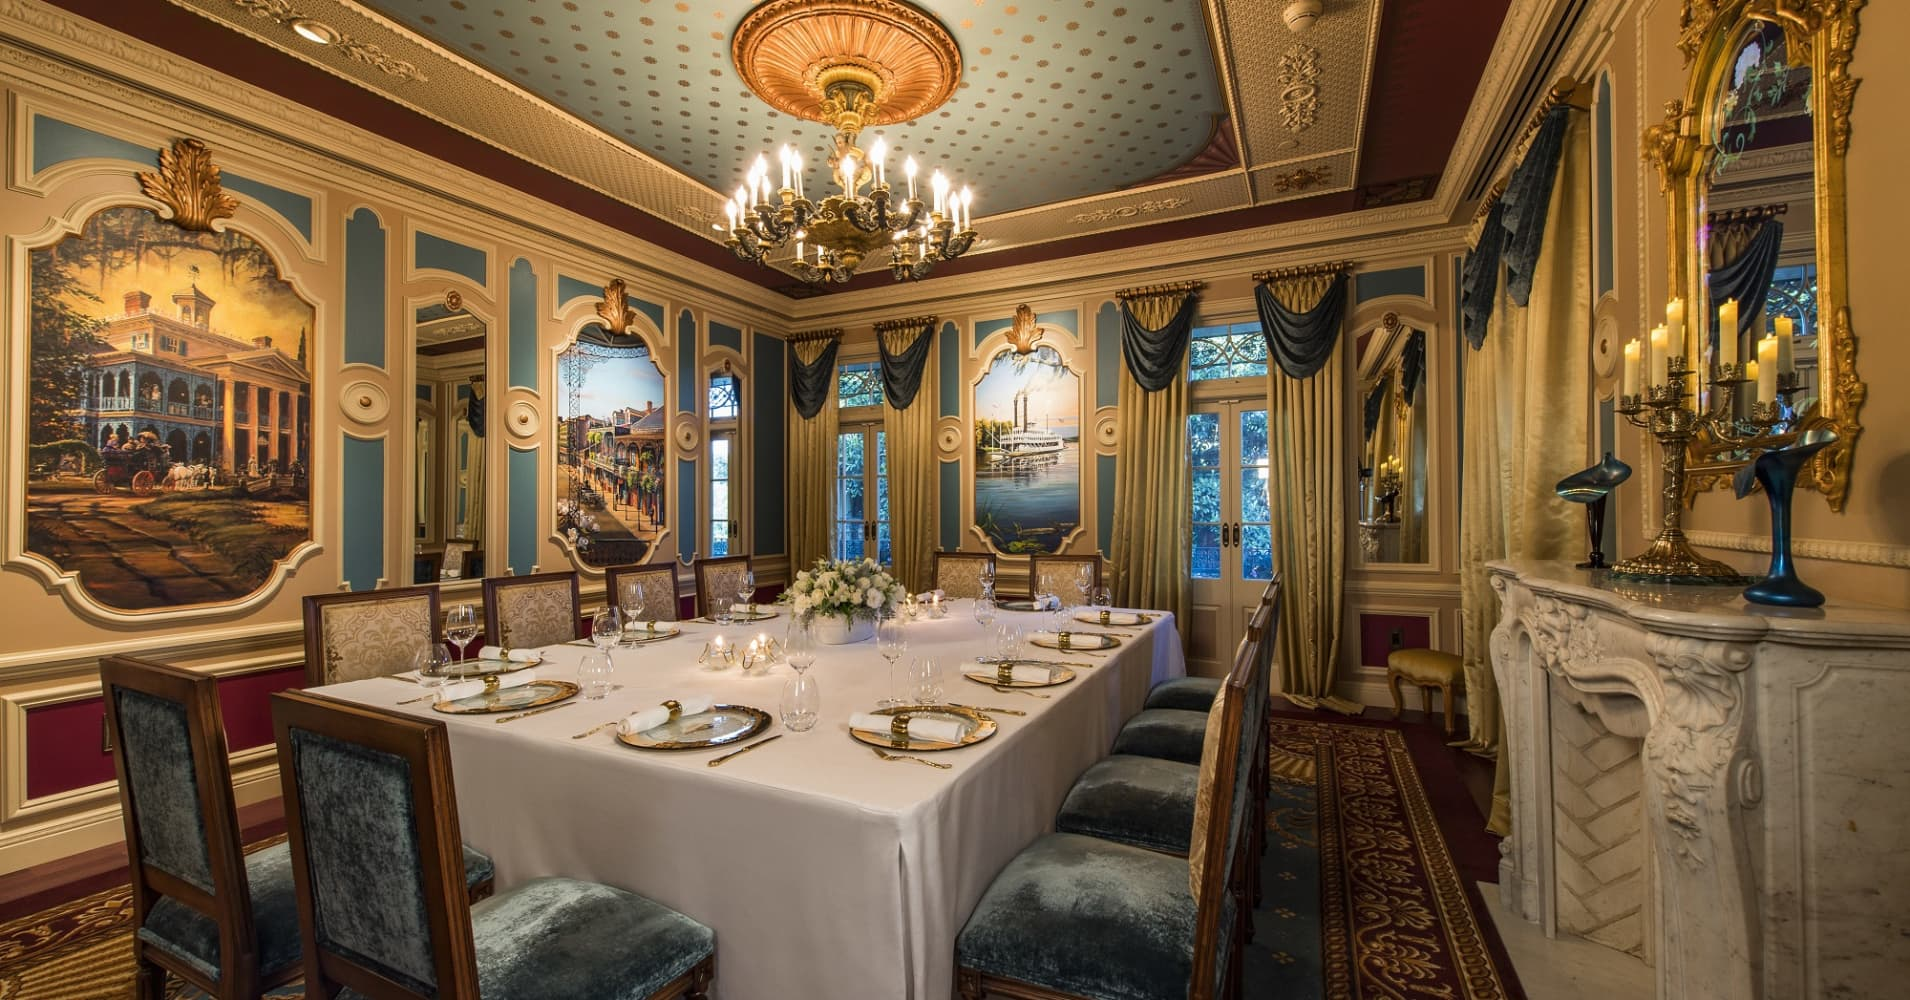 The dining room at Disney's 21 Royal.